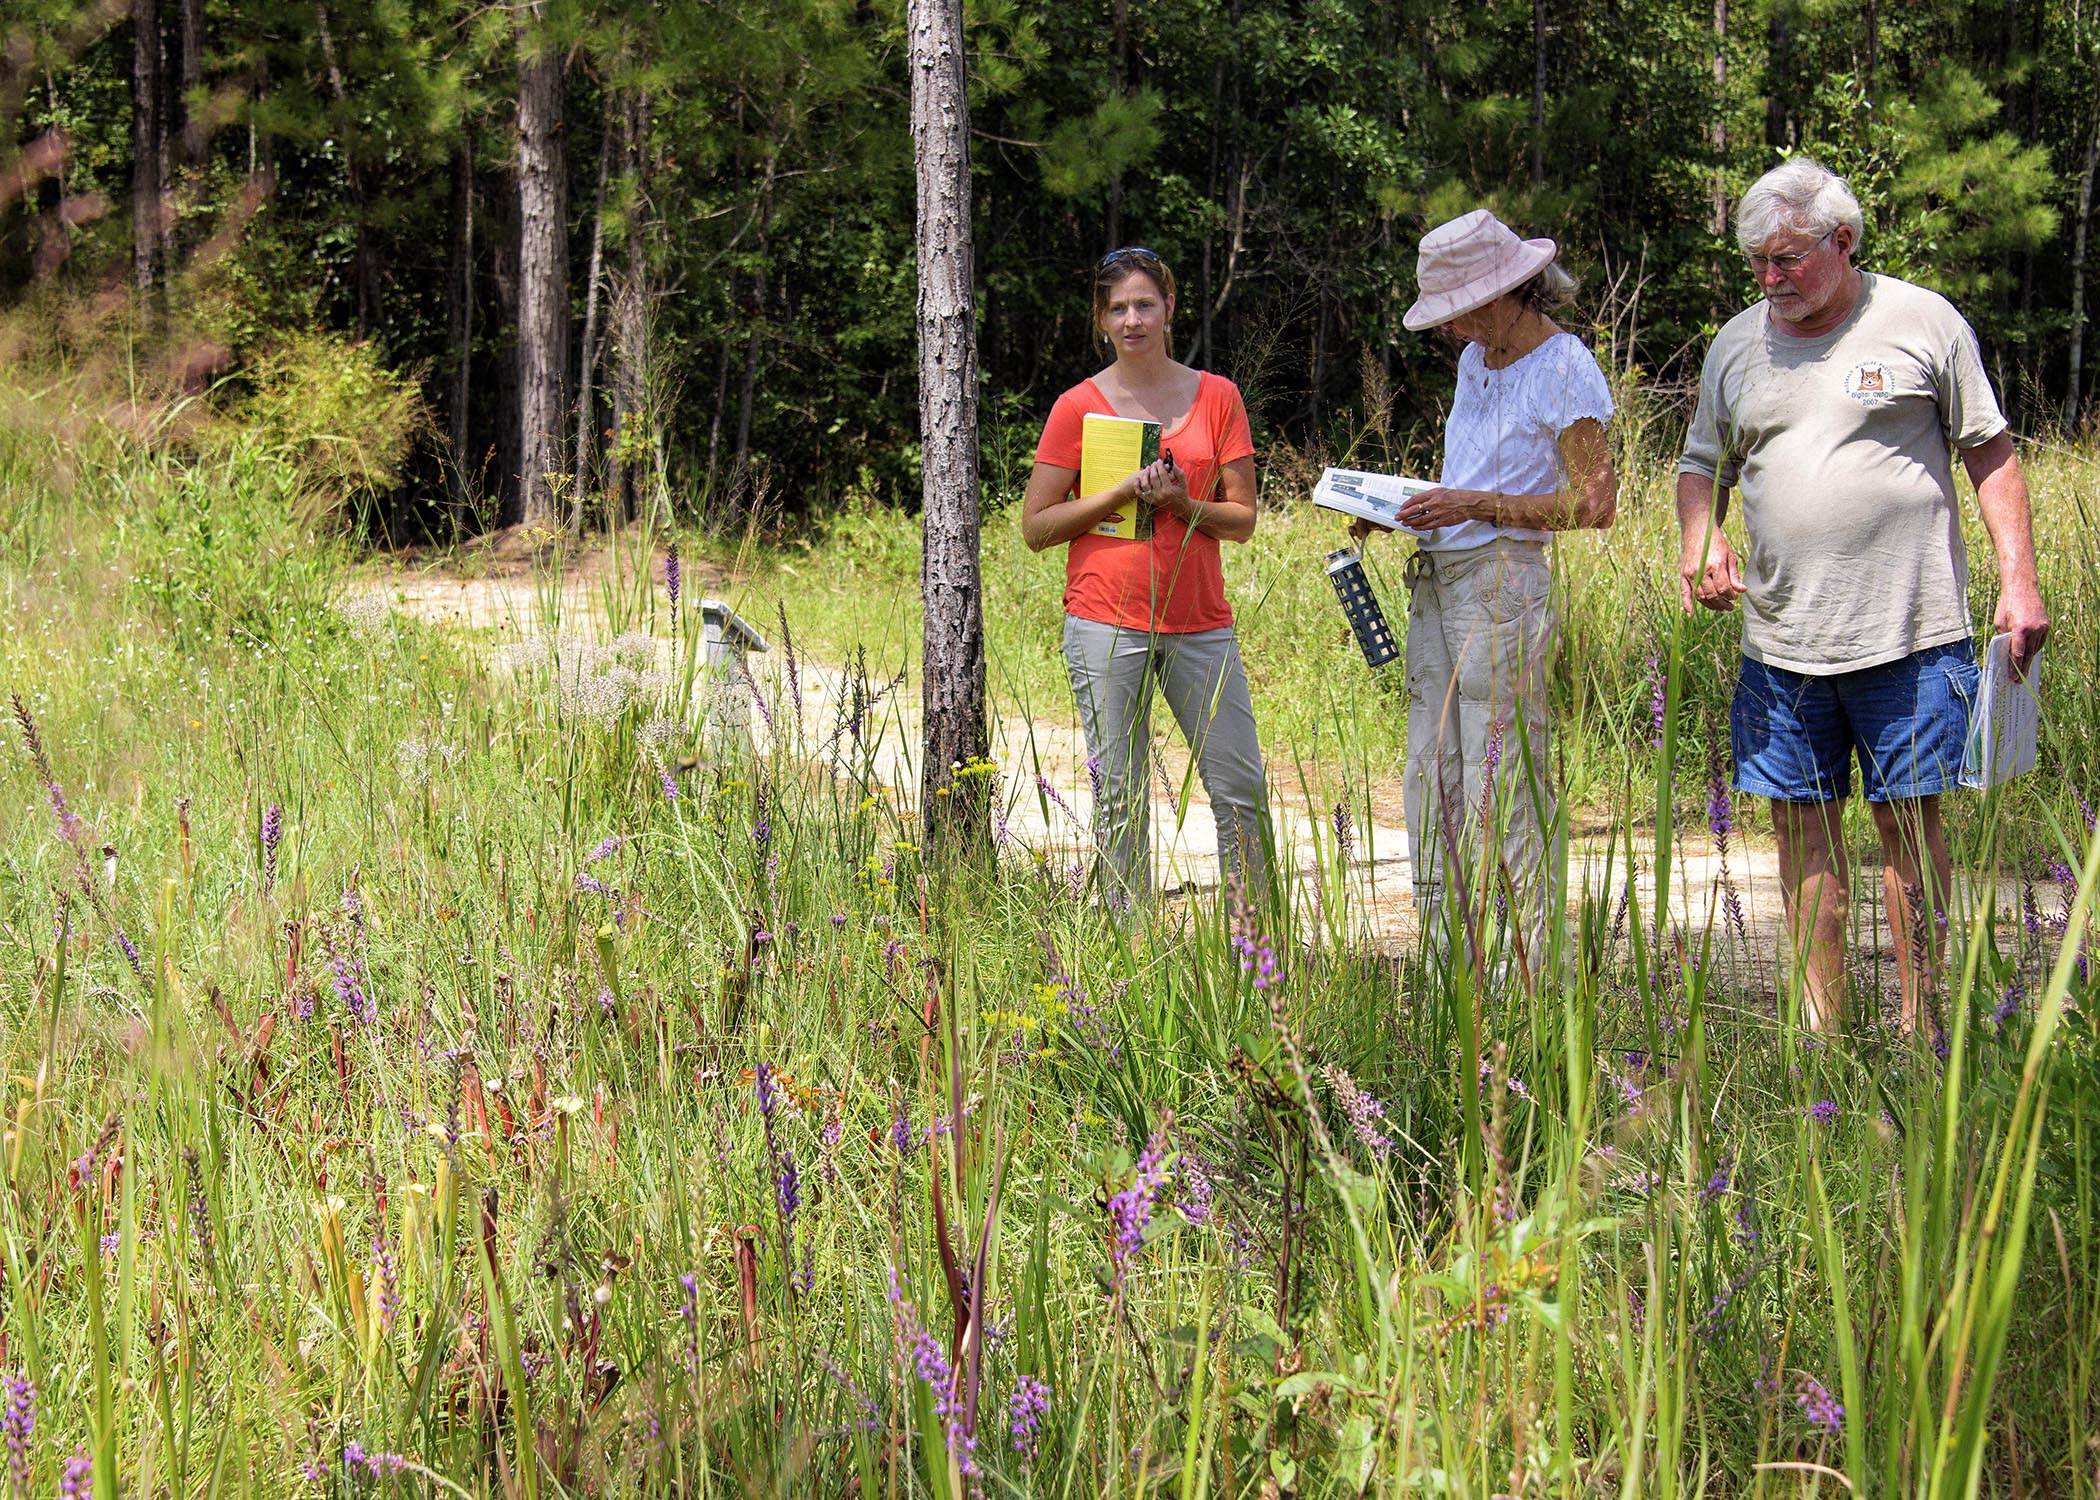 Two women and one man take in a field of native flowers and grasses at the Mississippi State University Crosby Arboretum during a class field trip.